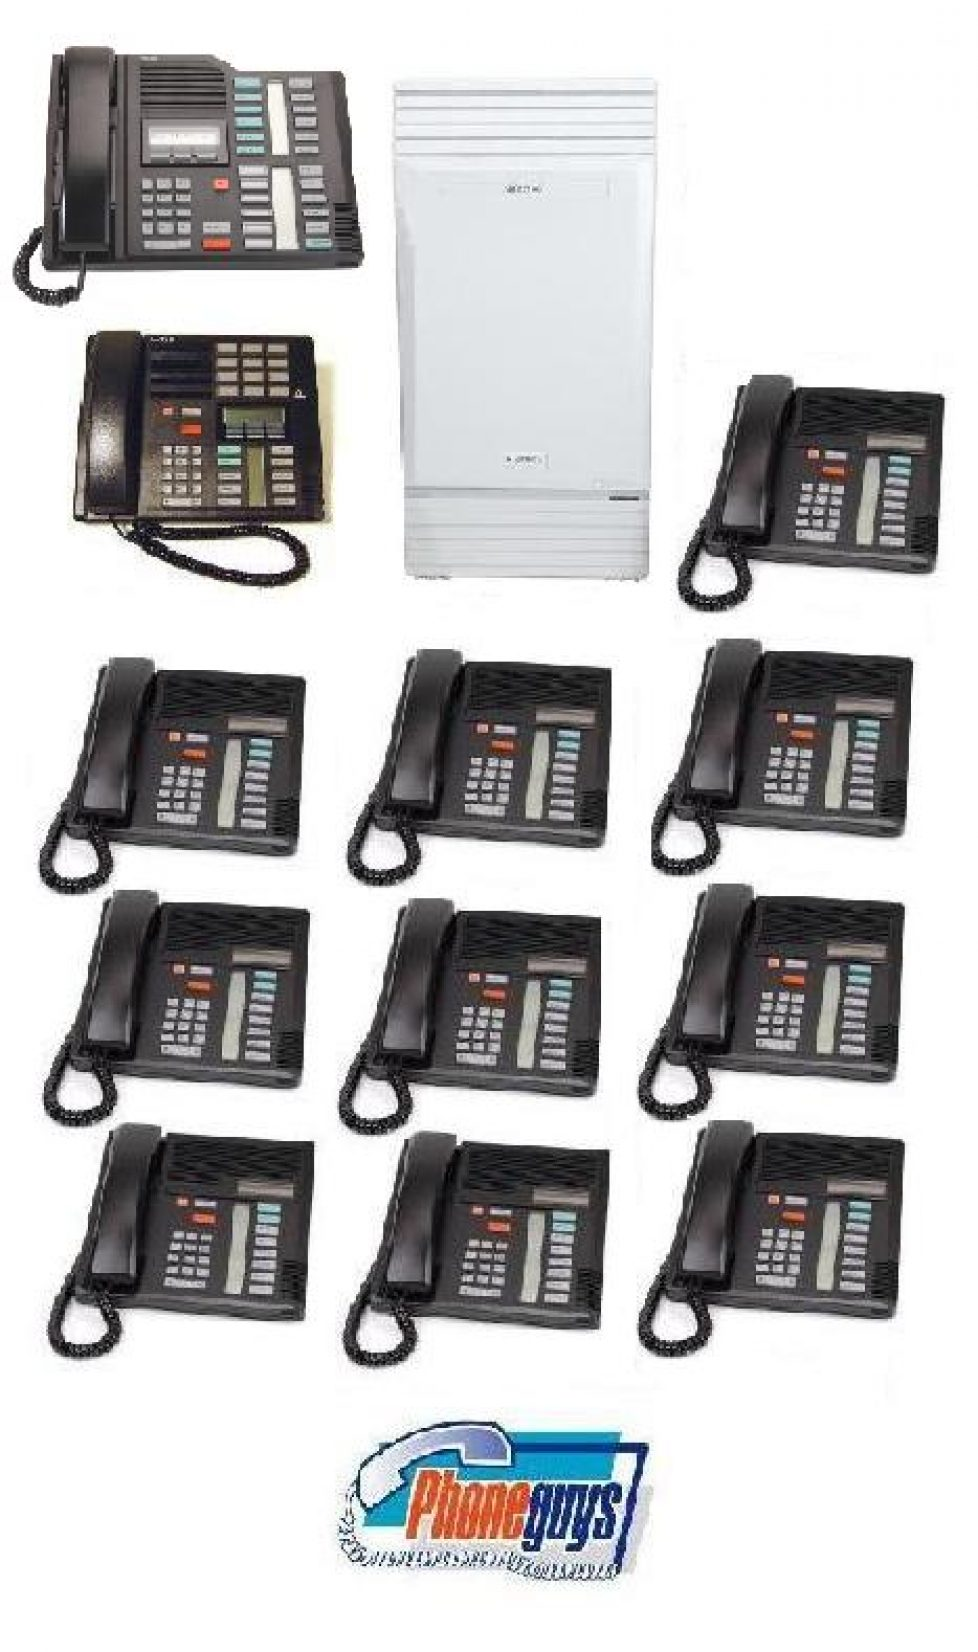 Modular ICS with 1-M7324 1-M7310 10-M7208 Phones